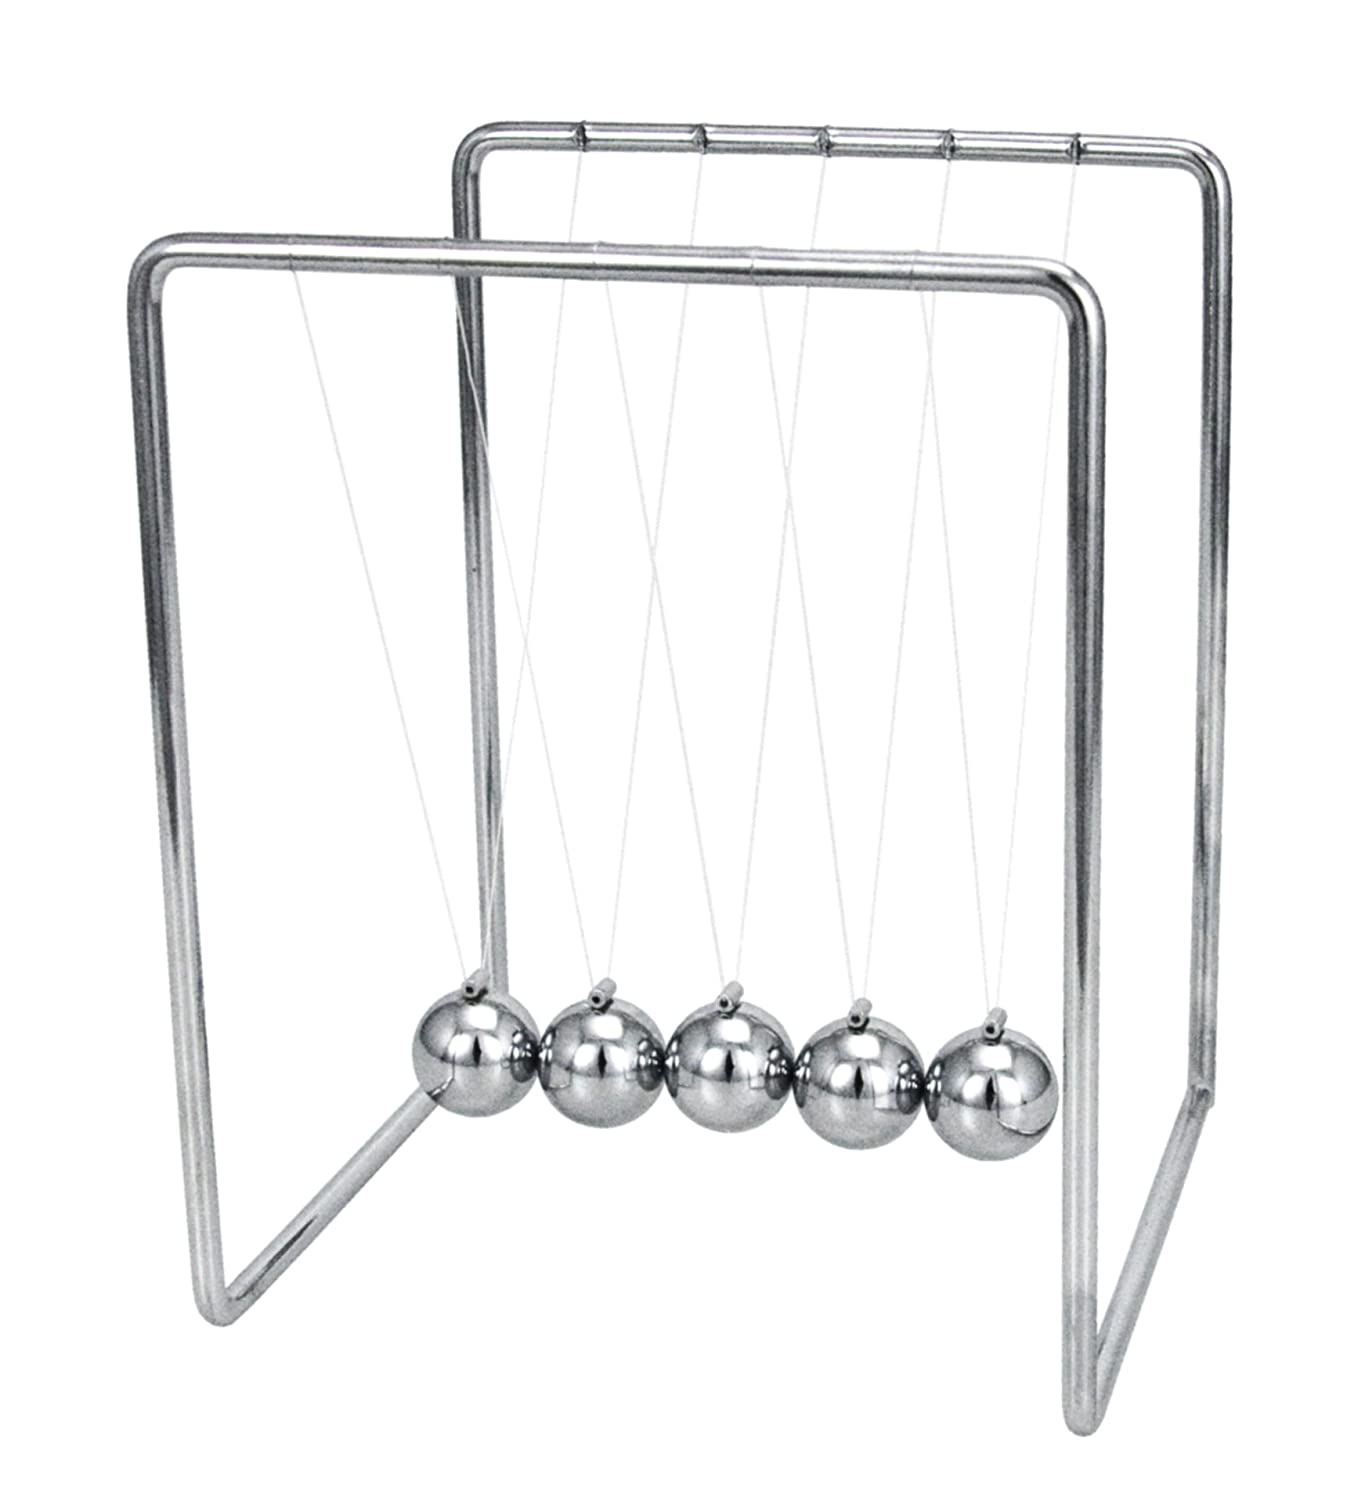 Zeon Newton's Cradle Executive Desktop Toy CE3529